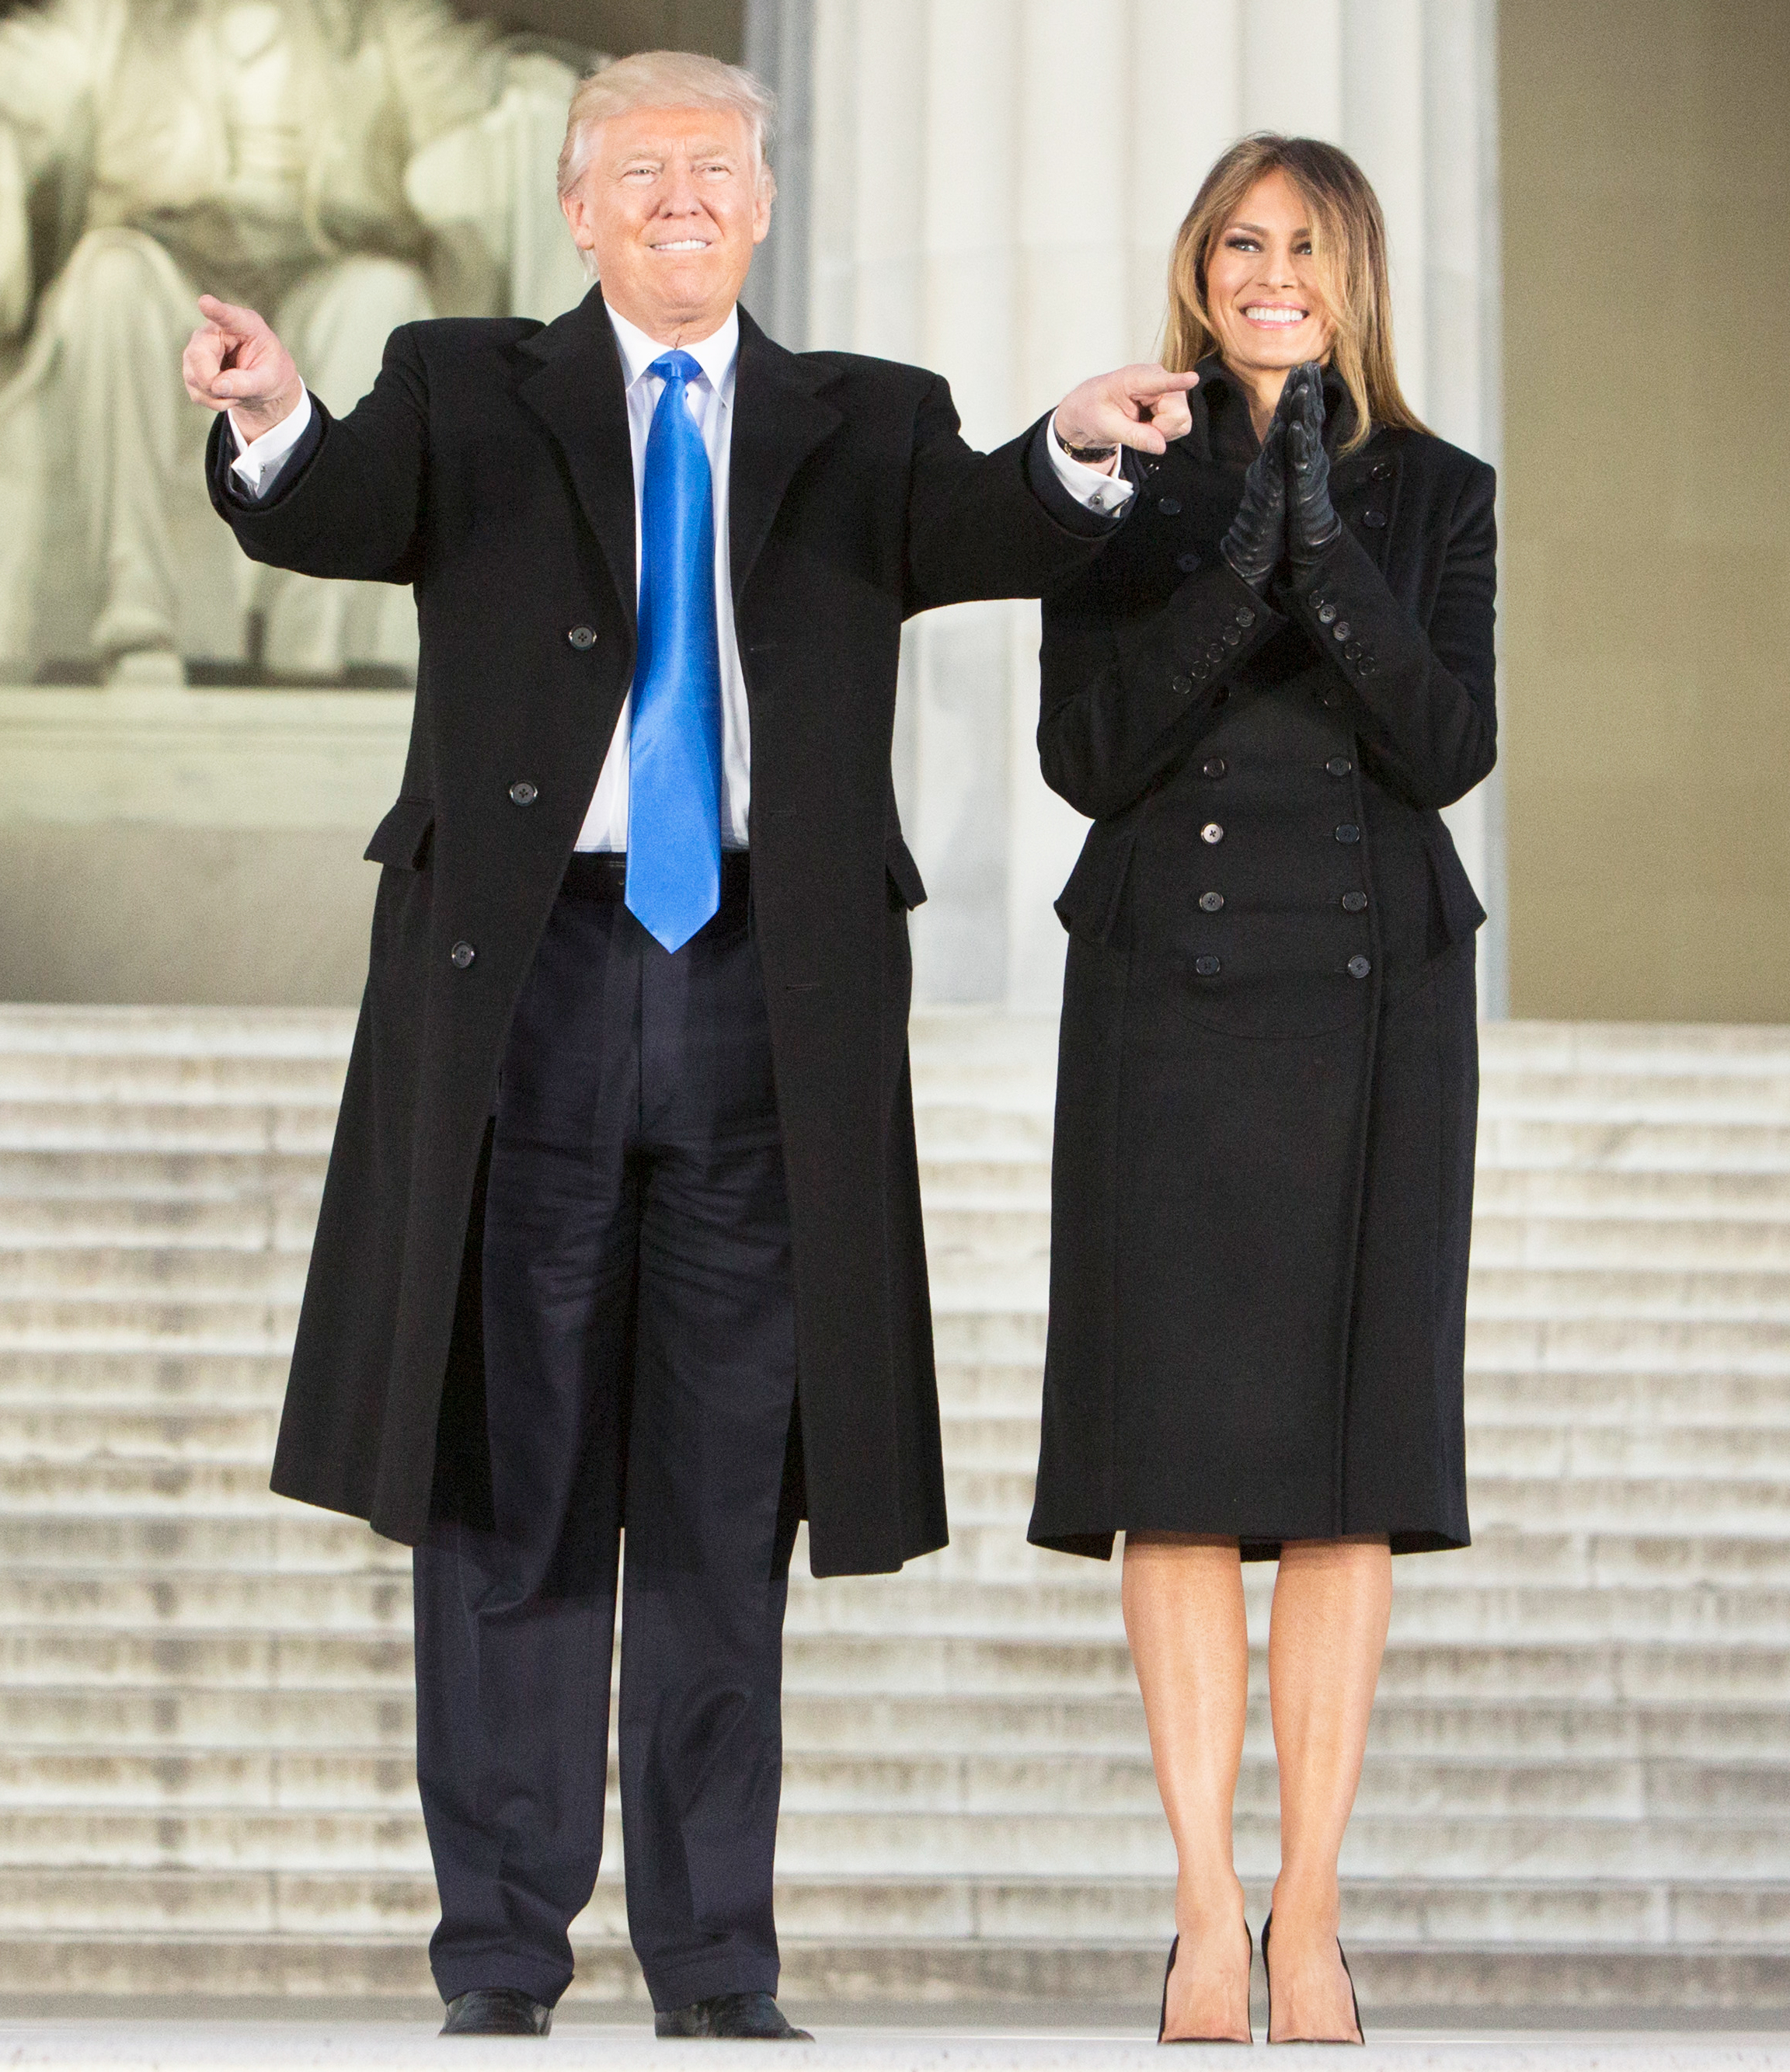 President-elect of The United States Donald J. Trump and first lady-elect of The United States Melania Trump arrive at the